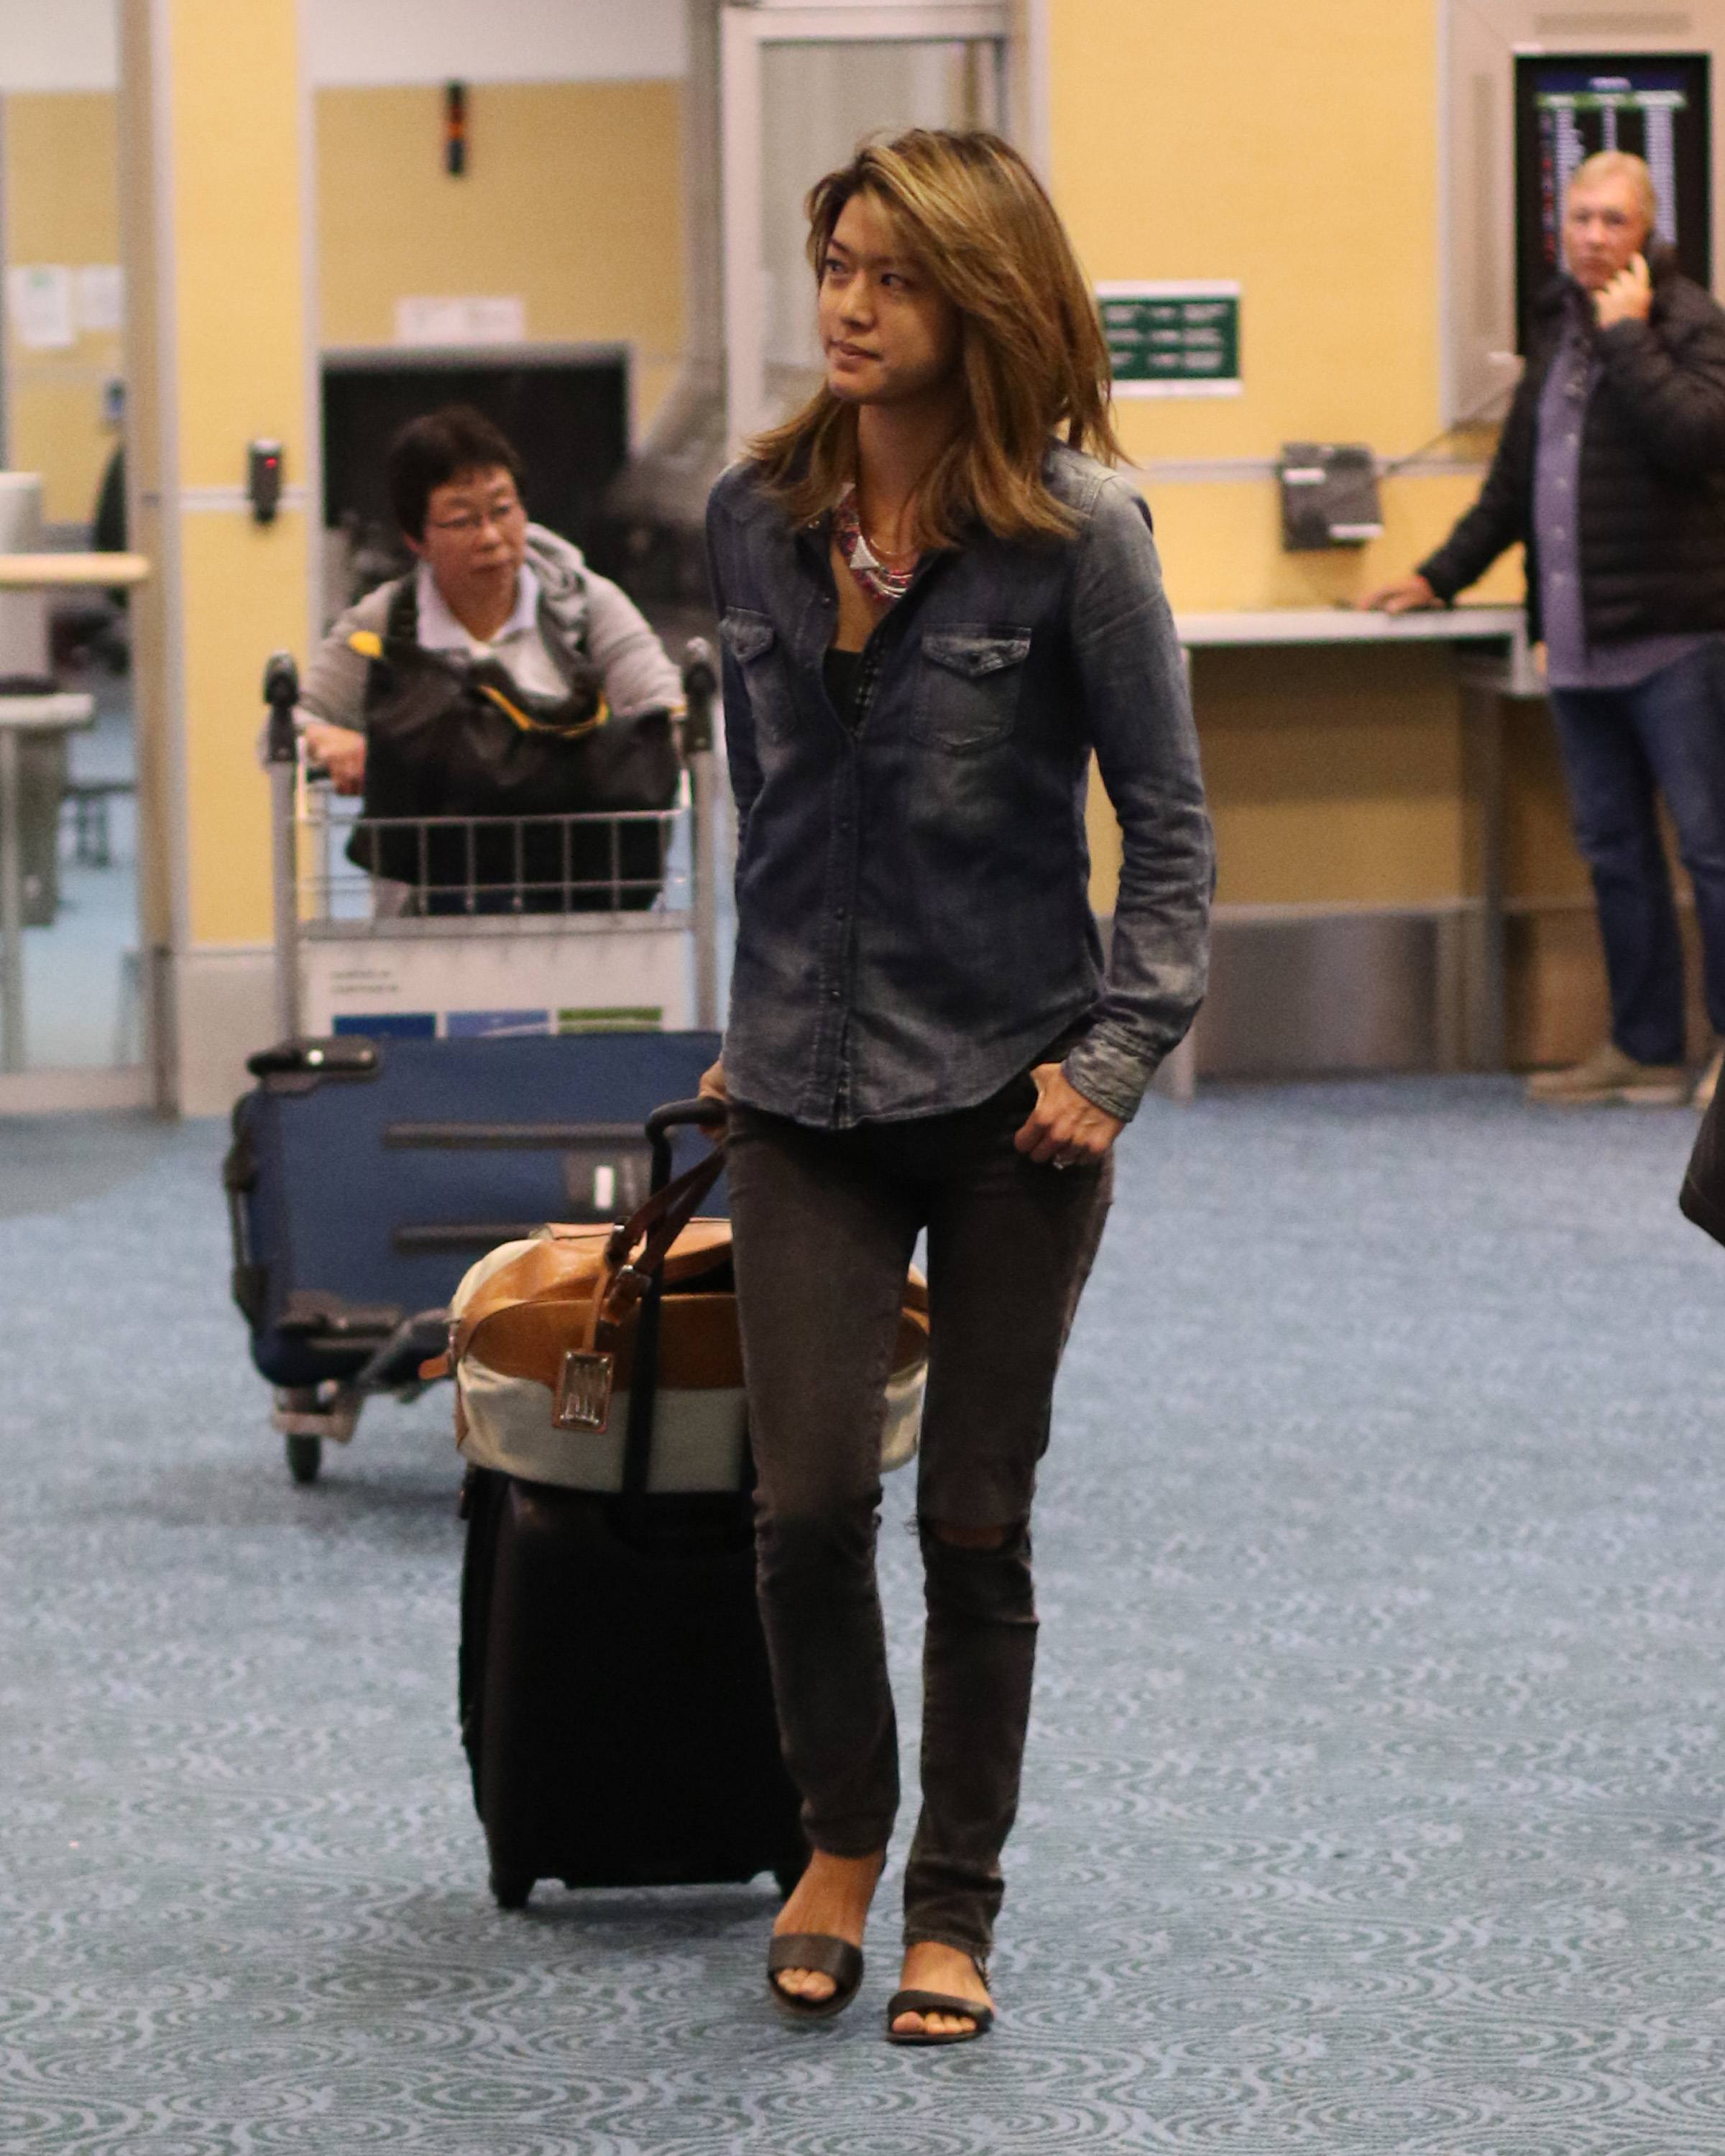 Grace Park Spotted In Vancouver Photos Daily Hive Vancouver